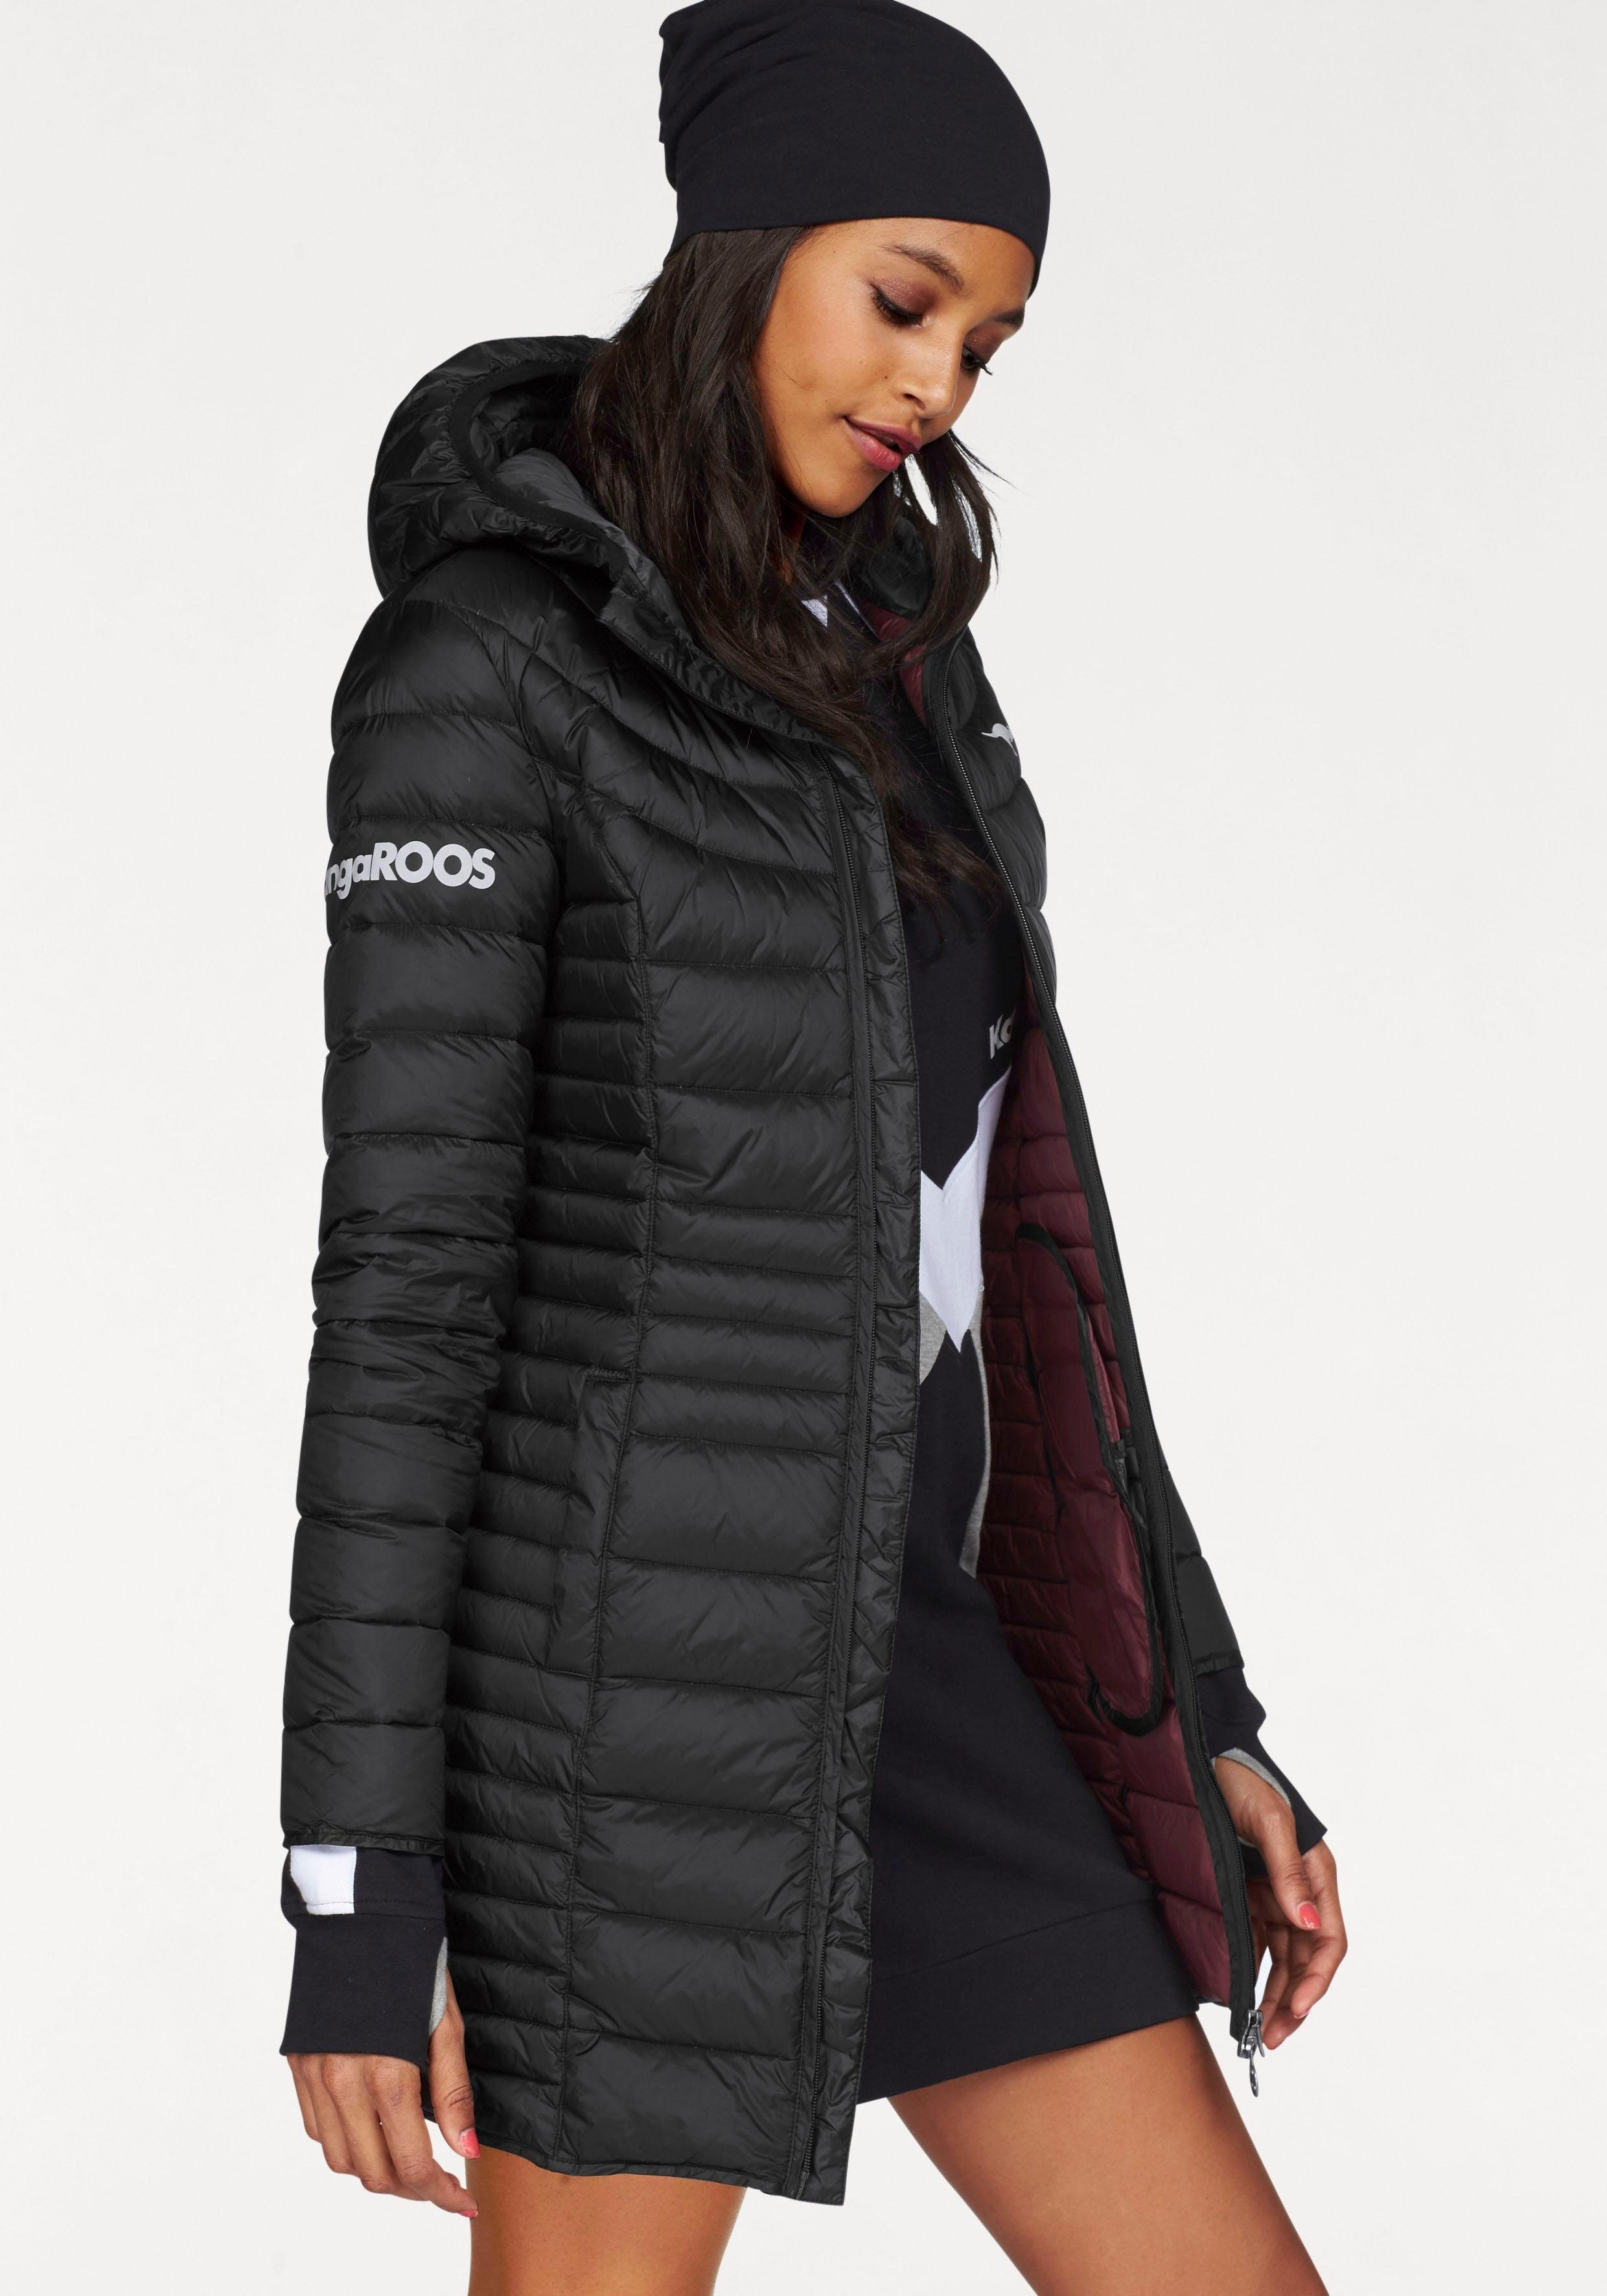 daunenmantel damen wintermantel f r damen mode an kalten tagen twenga magazin moncler jacke. Black Bedroom Furniture Sets. Home Design Ideas